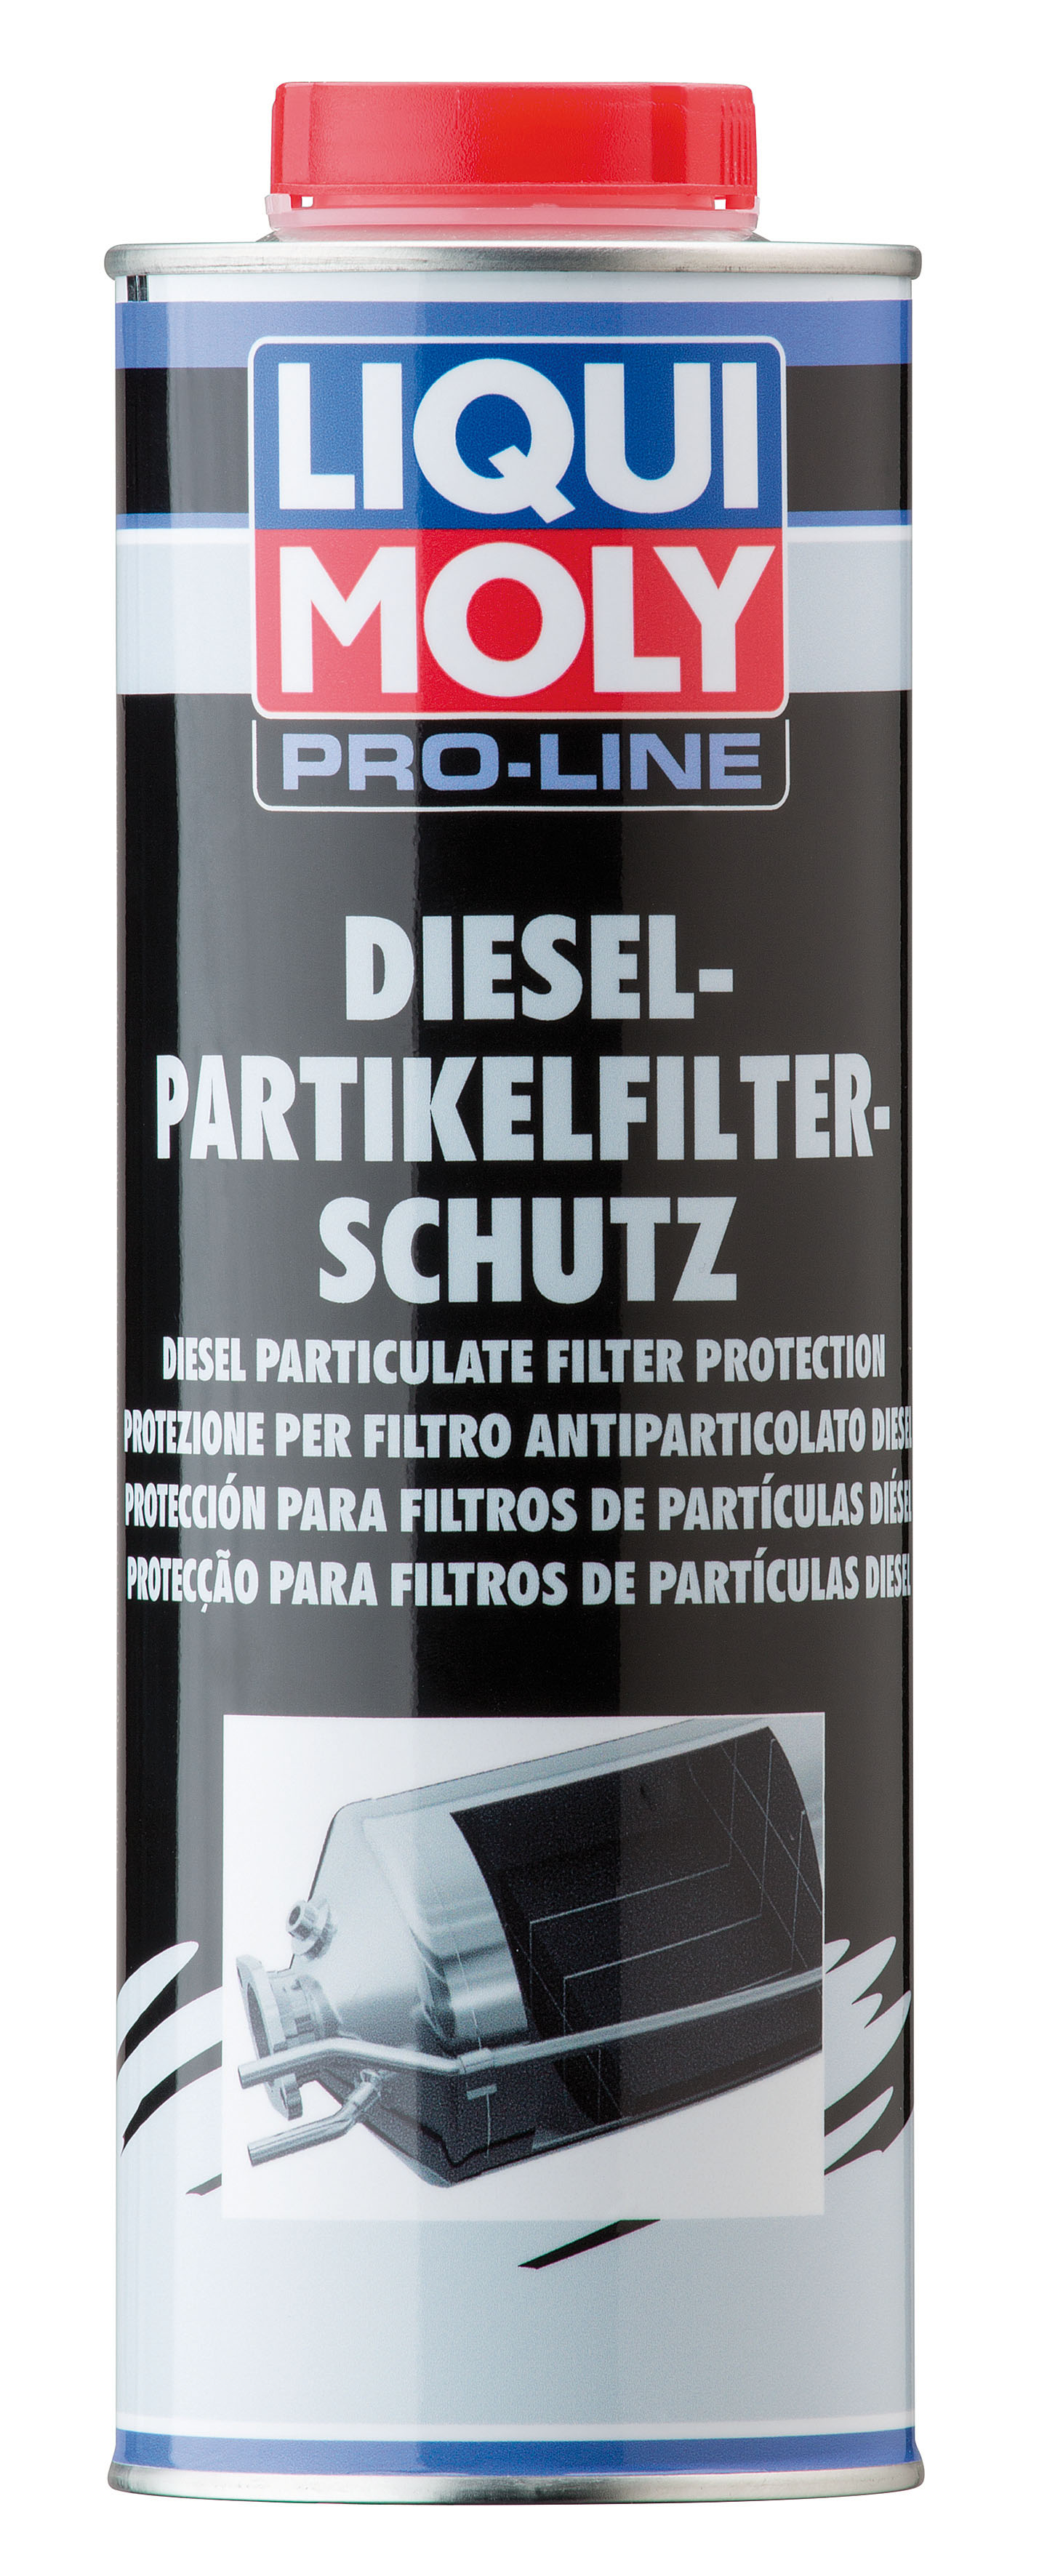 motoroel king liqui moly pro line dieselpartikelfilter schutz. Black Bedroom Furniture Sets. Home Design Ideas